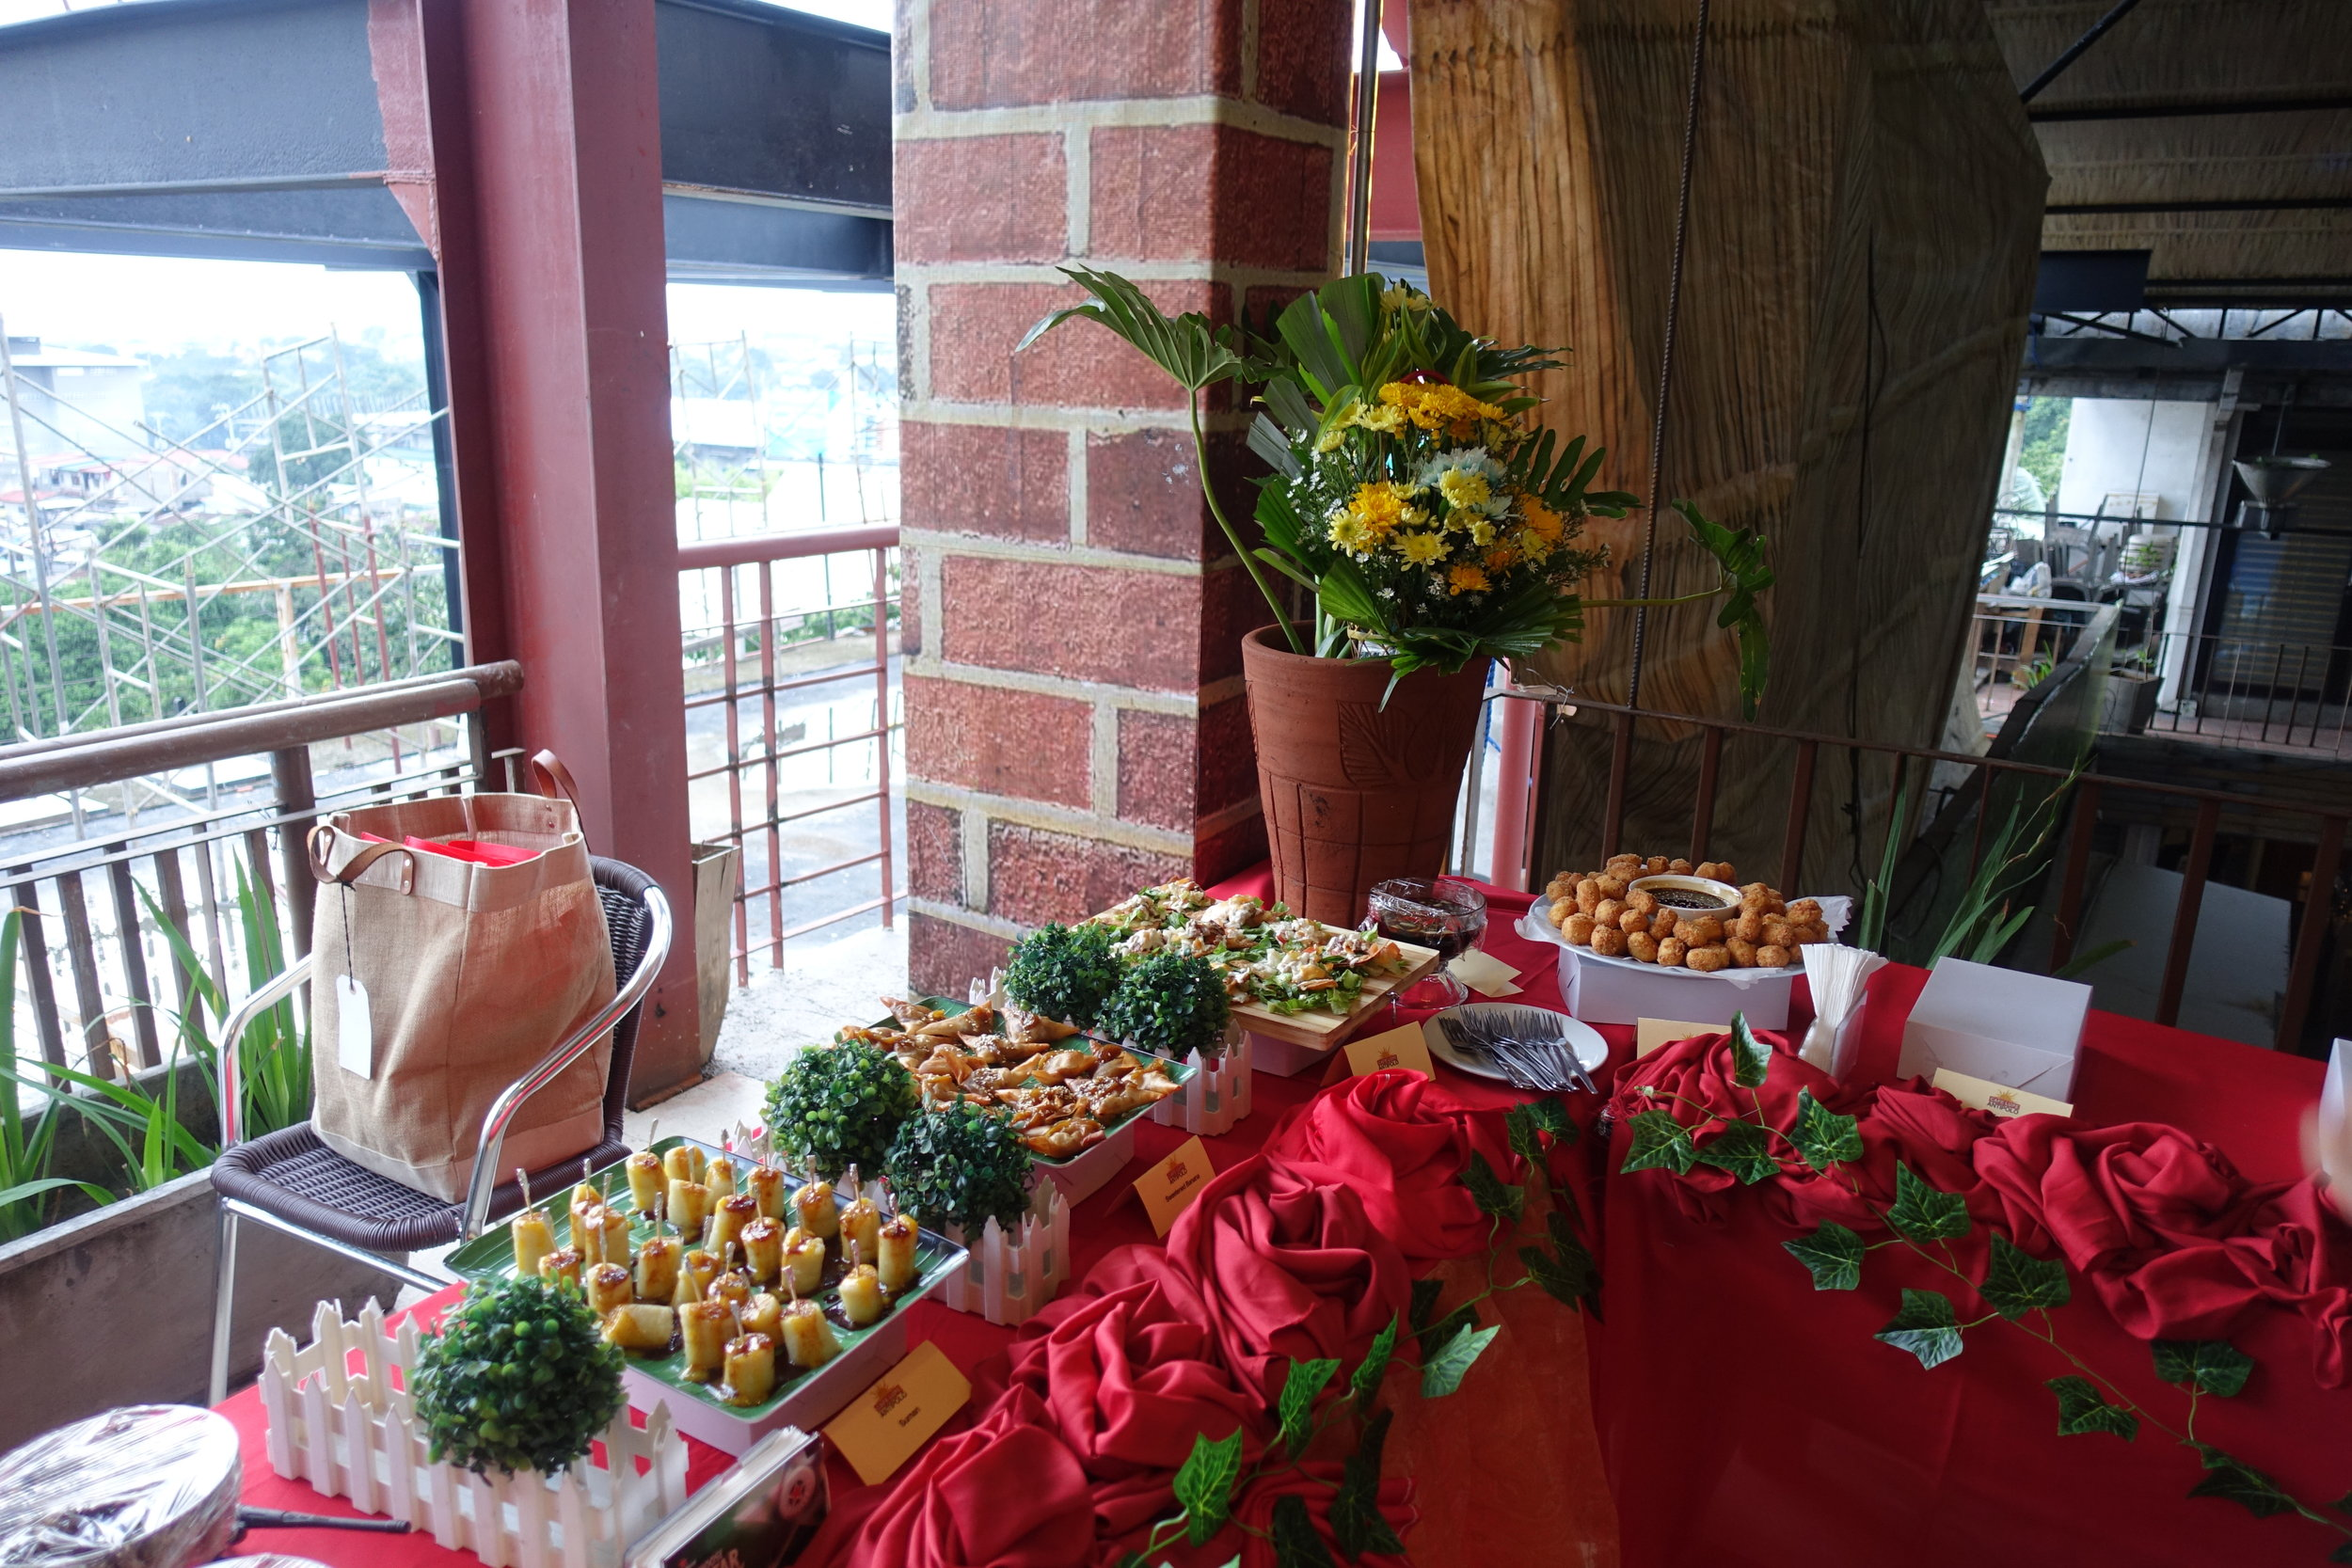 cafe-lupe-catering-7.JPG